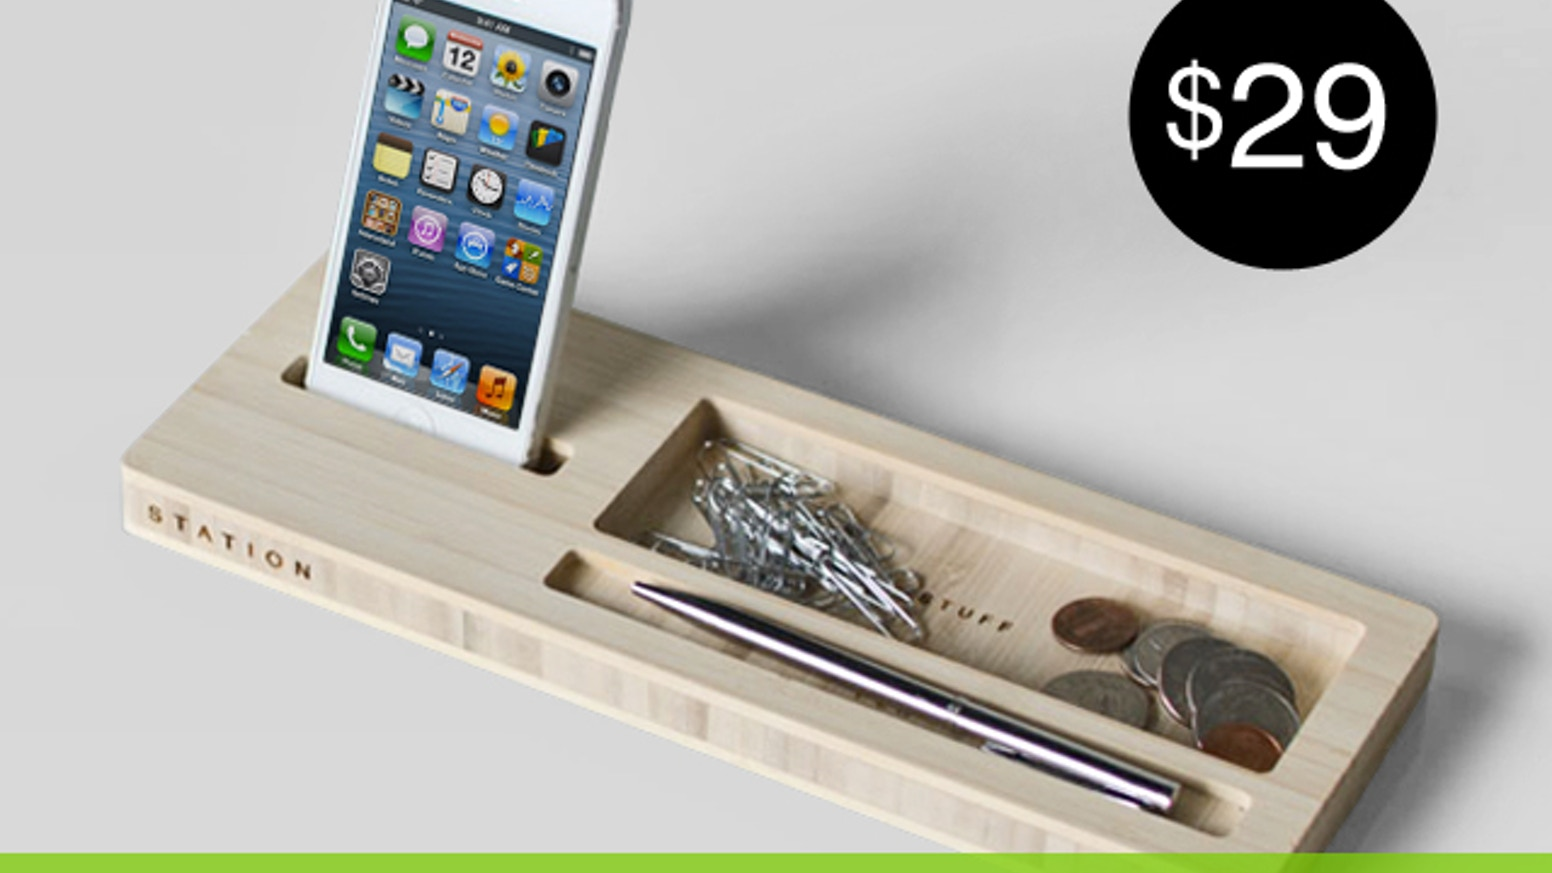 MODERN Caddy for your phone, keys, sunglasses, pens, loose change, etc